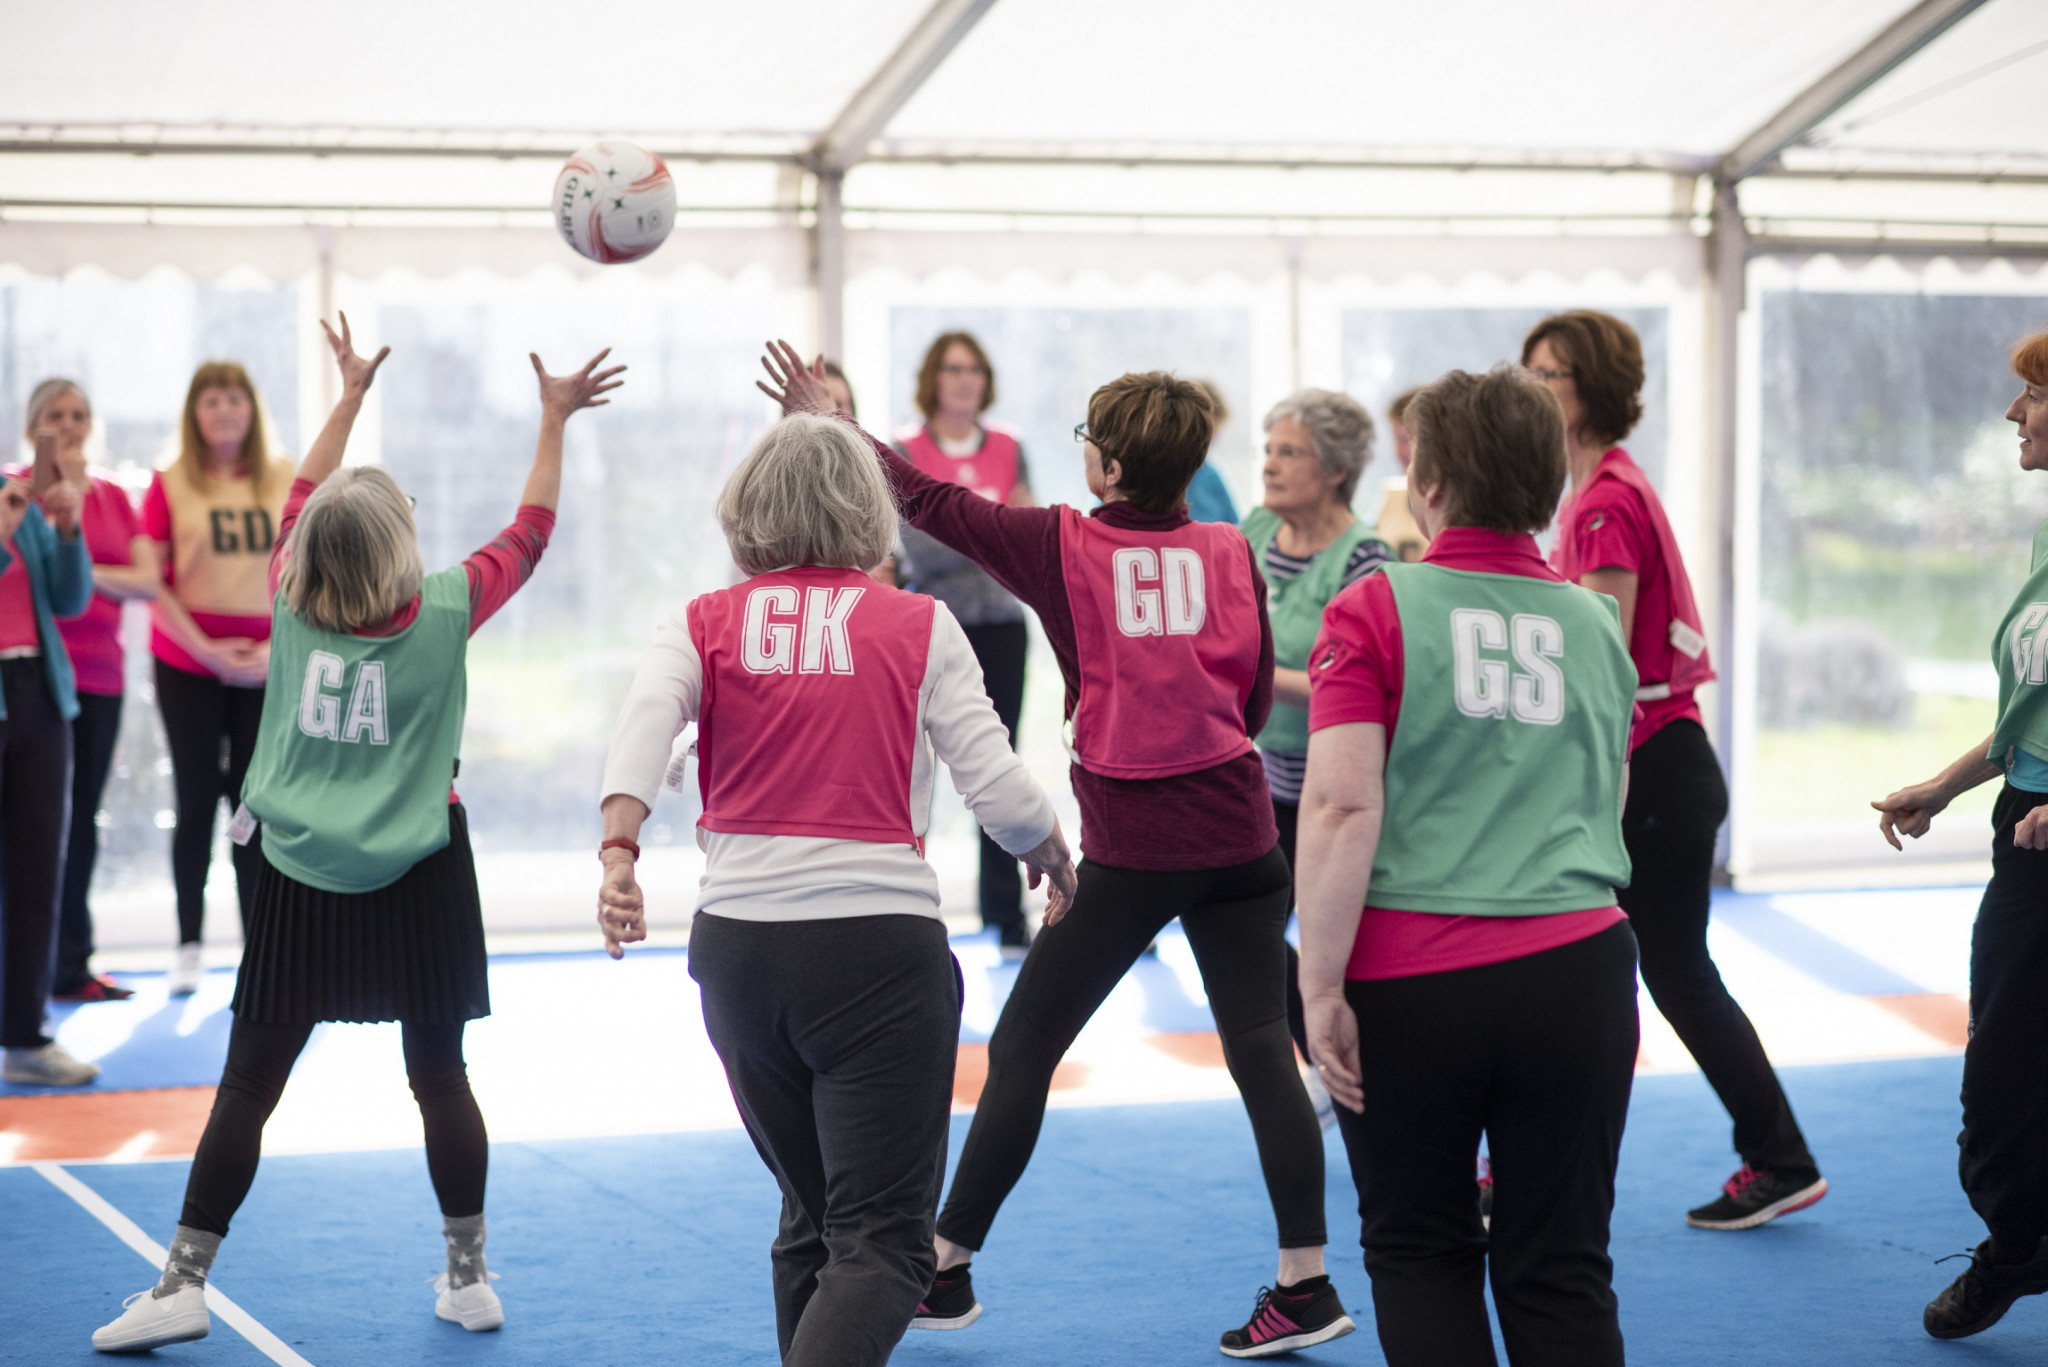 England Netball celebrate partnership with National Federation of Women's Institutes